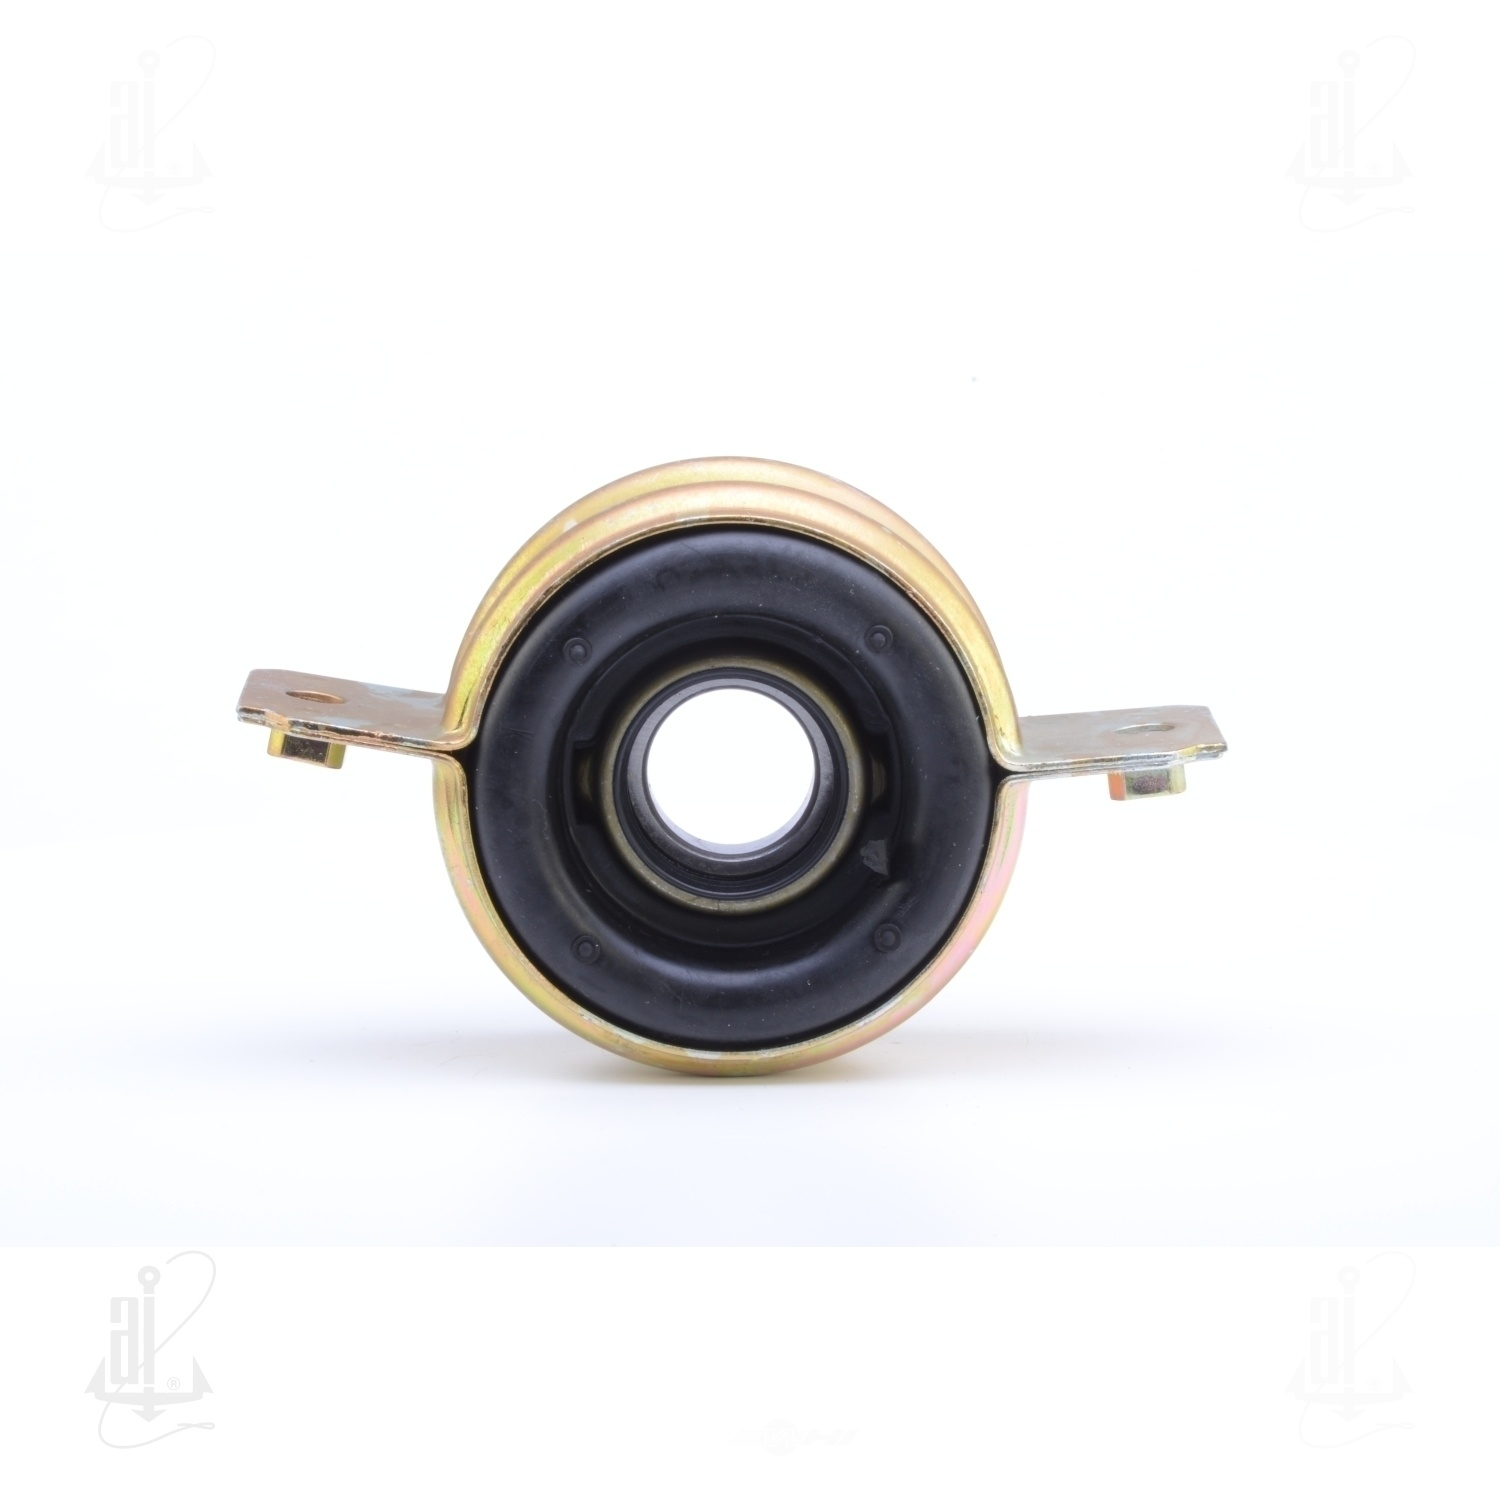 ANCHOR - Drive Shaft Center Support Bearing (Center) - ANH 8471